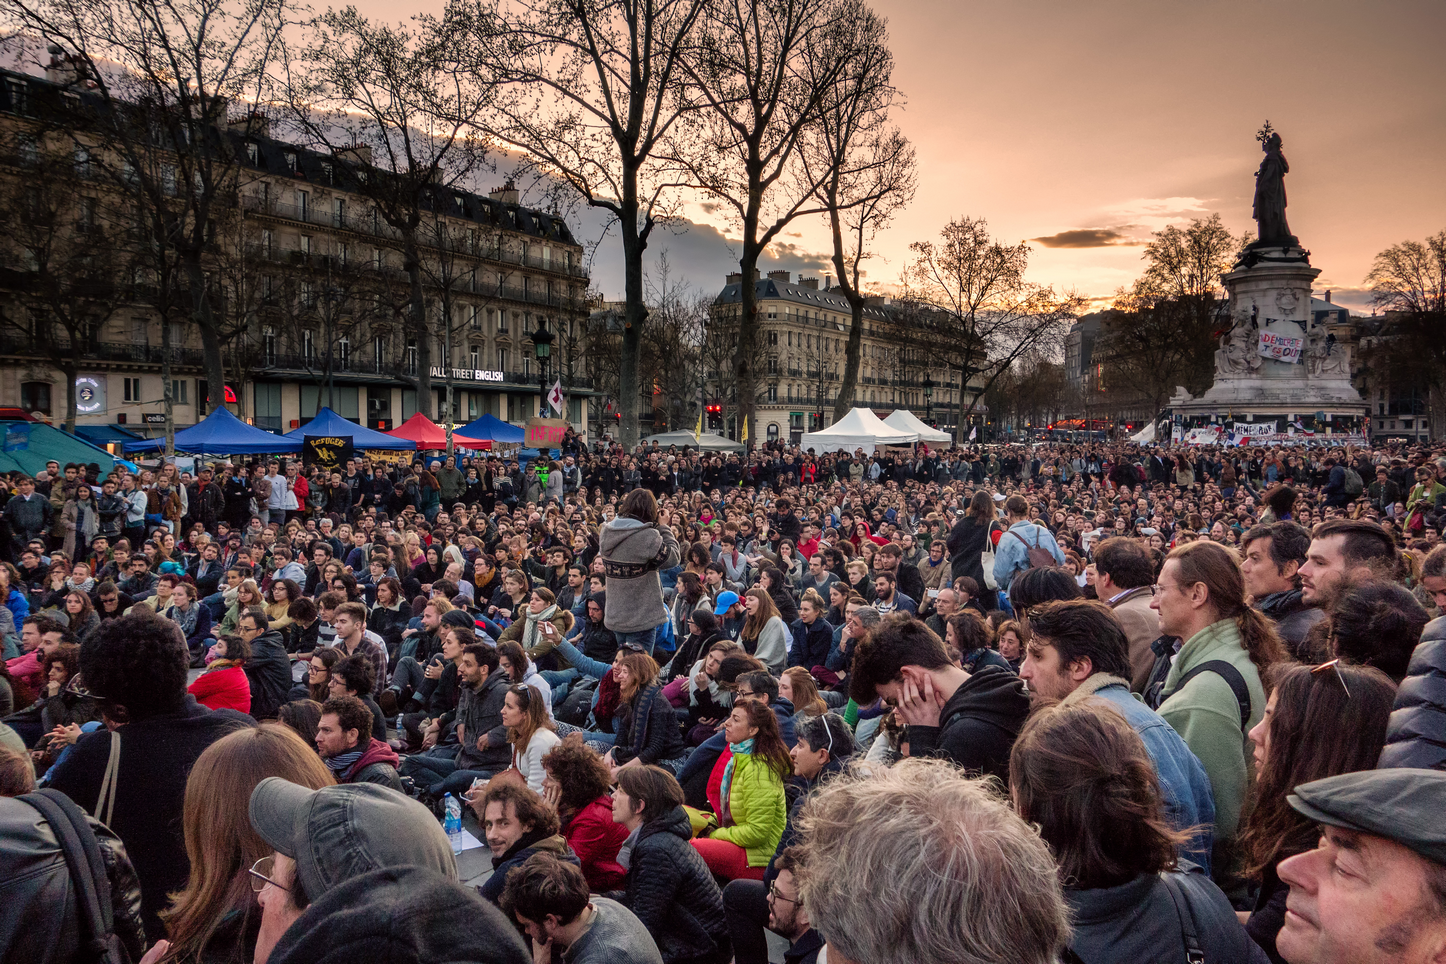 Nuit Debout à Paris le 10 avril 2016. Photo : Olivier Ortelpa